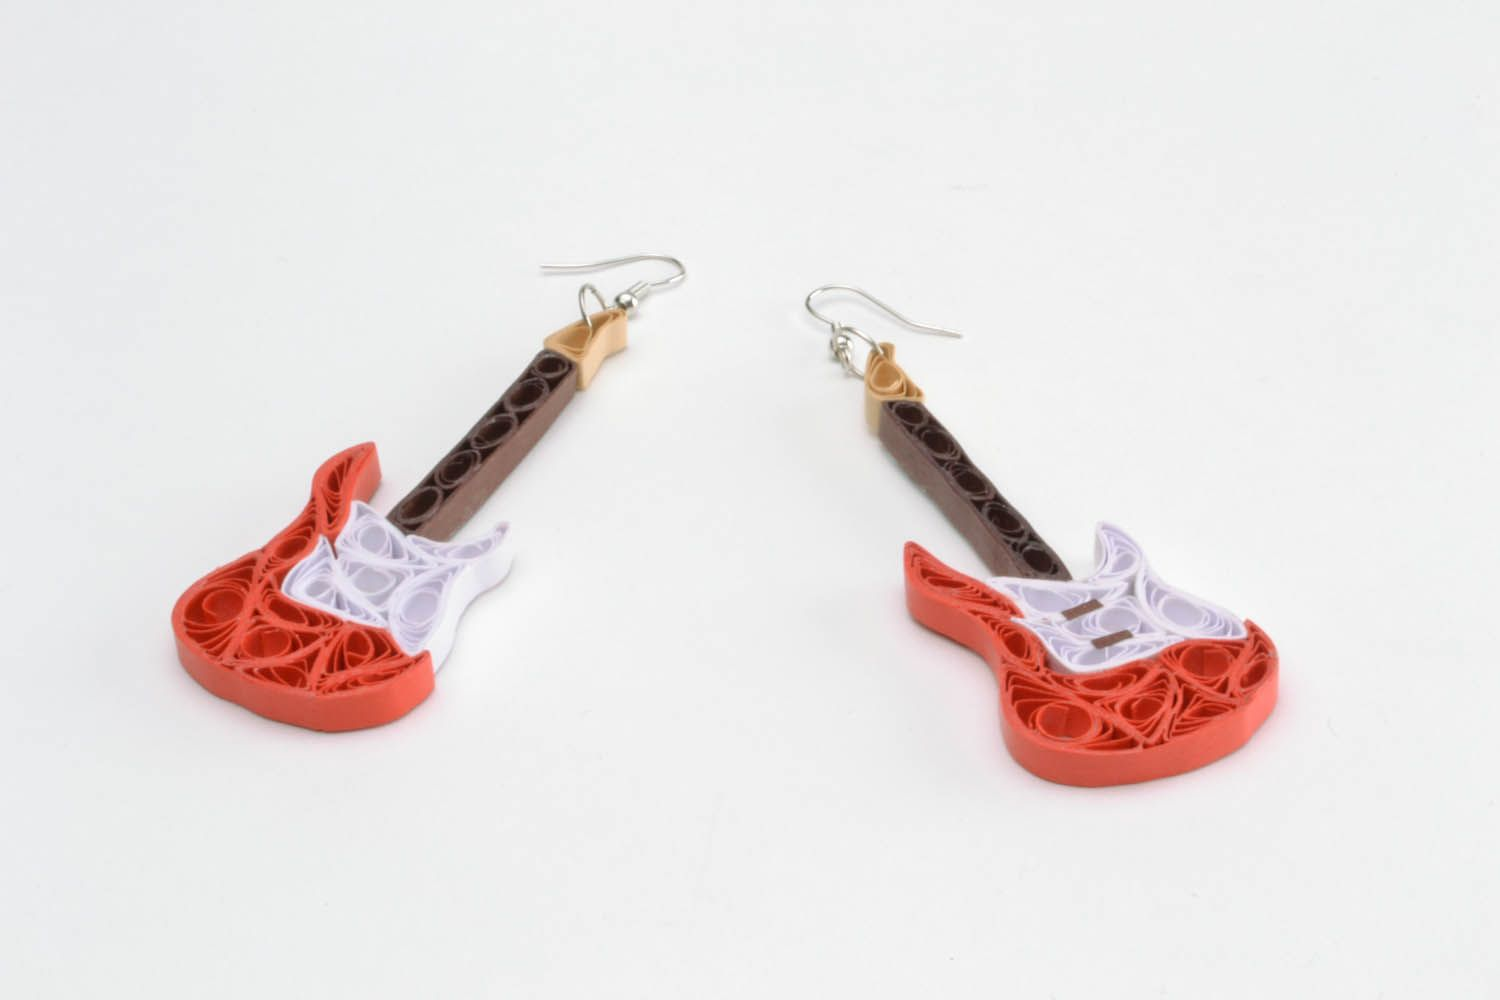 Paper earrings in the shape of guitars photo 4